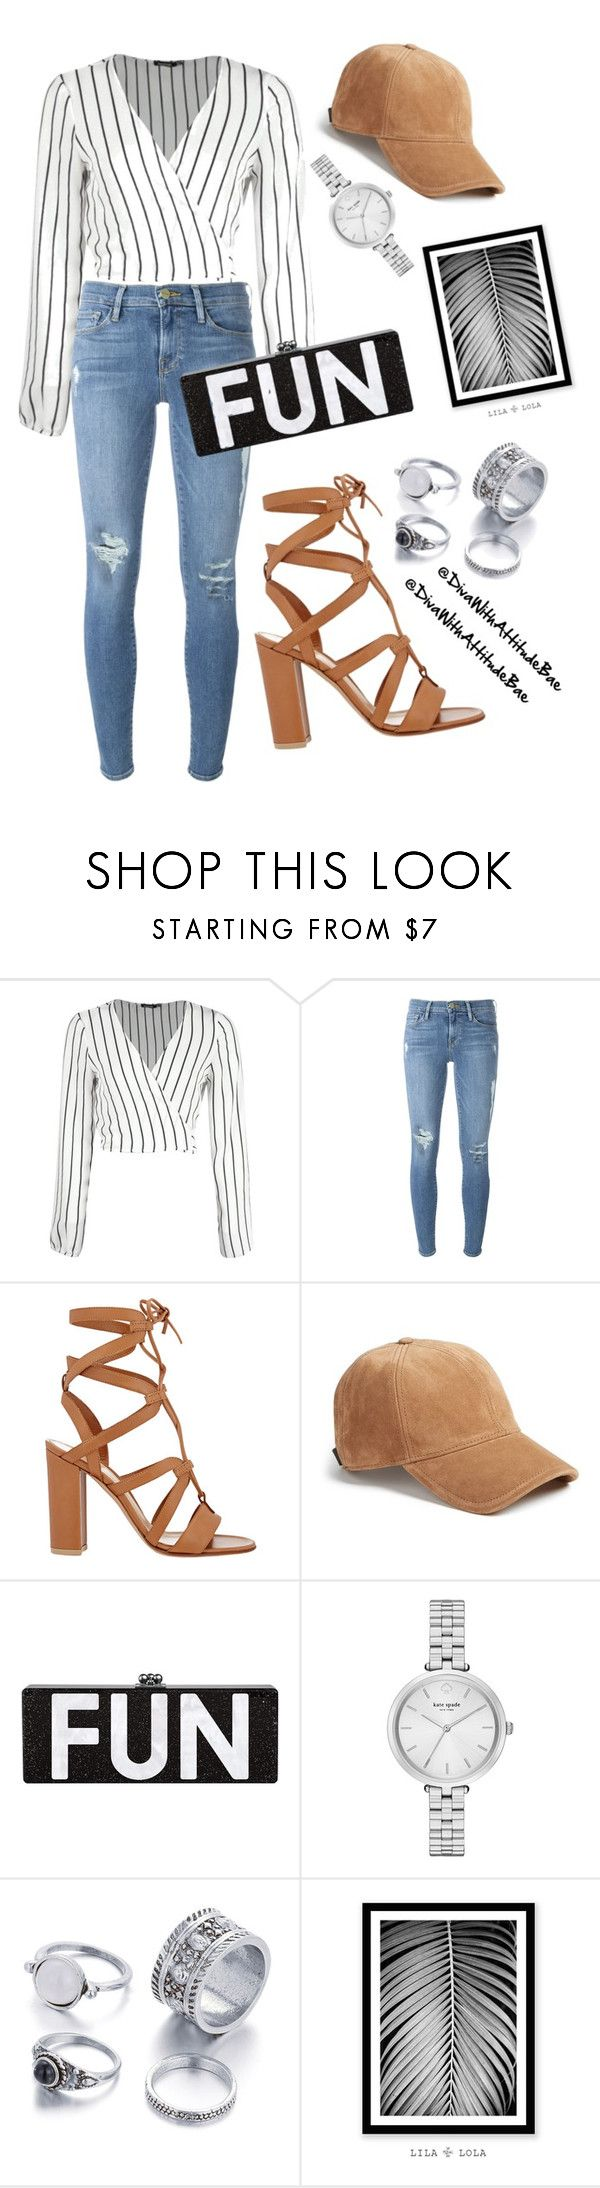 """""""Kekra_Faut Que Je Fasse'🎶"""" by divawithattitudebae ❤ liked on Polyvore featuring Boohoo, Frame, Gianvito Rossi, rag & bone, Kate Spade and WALL"""